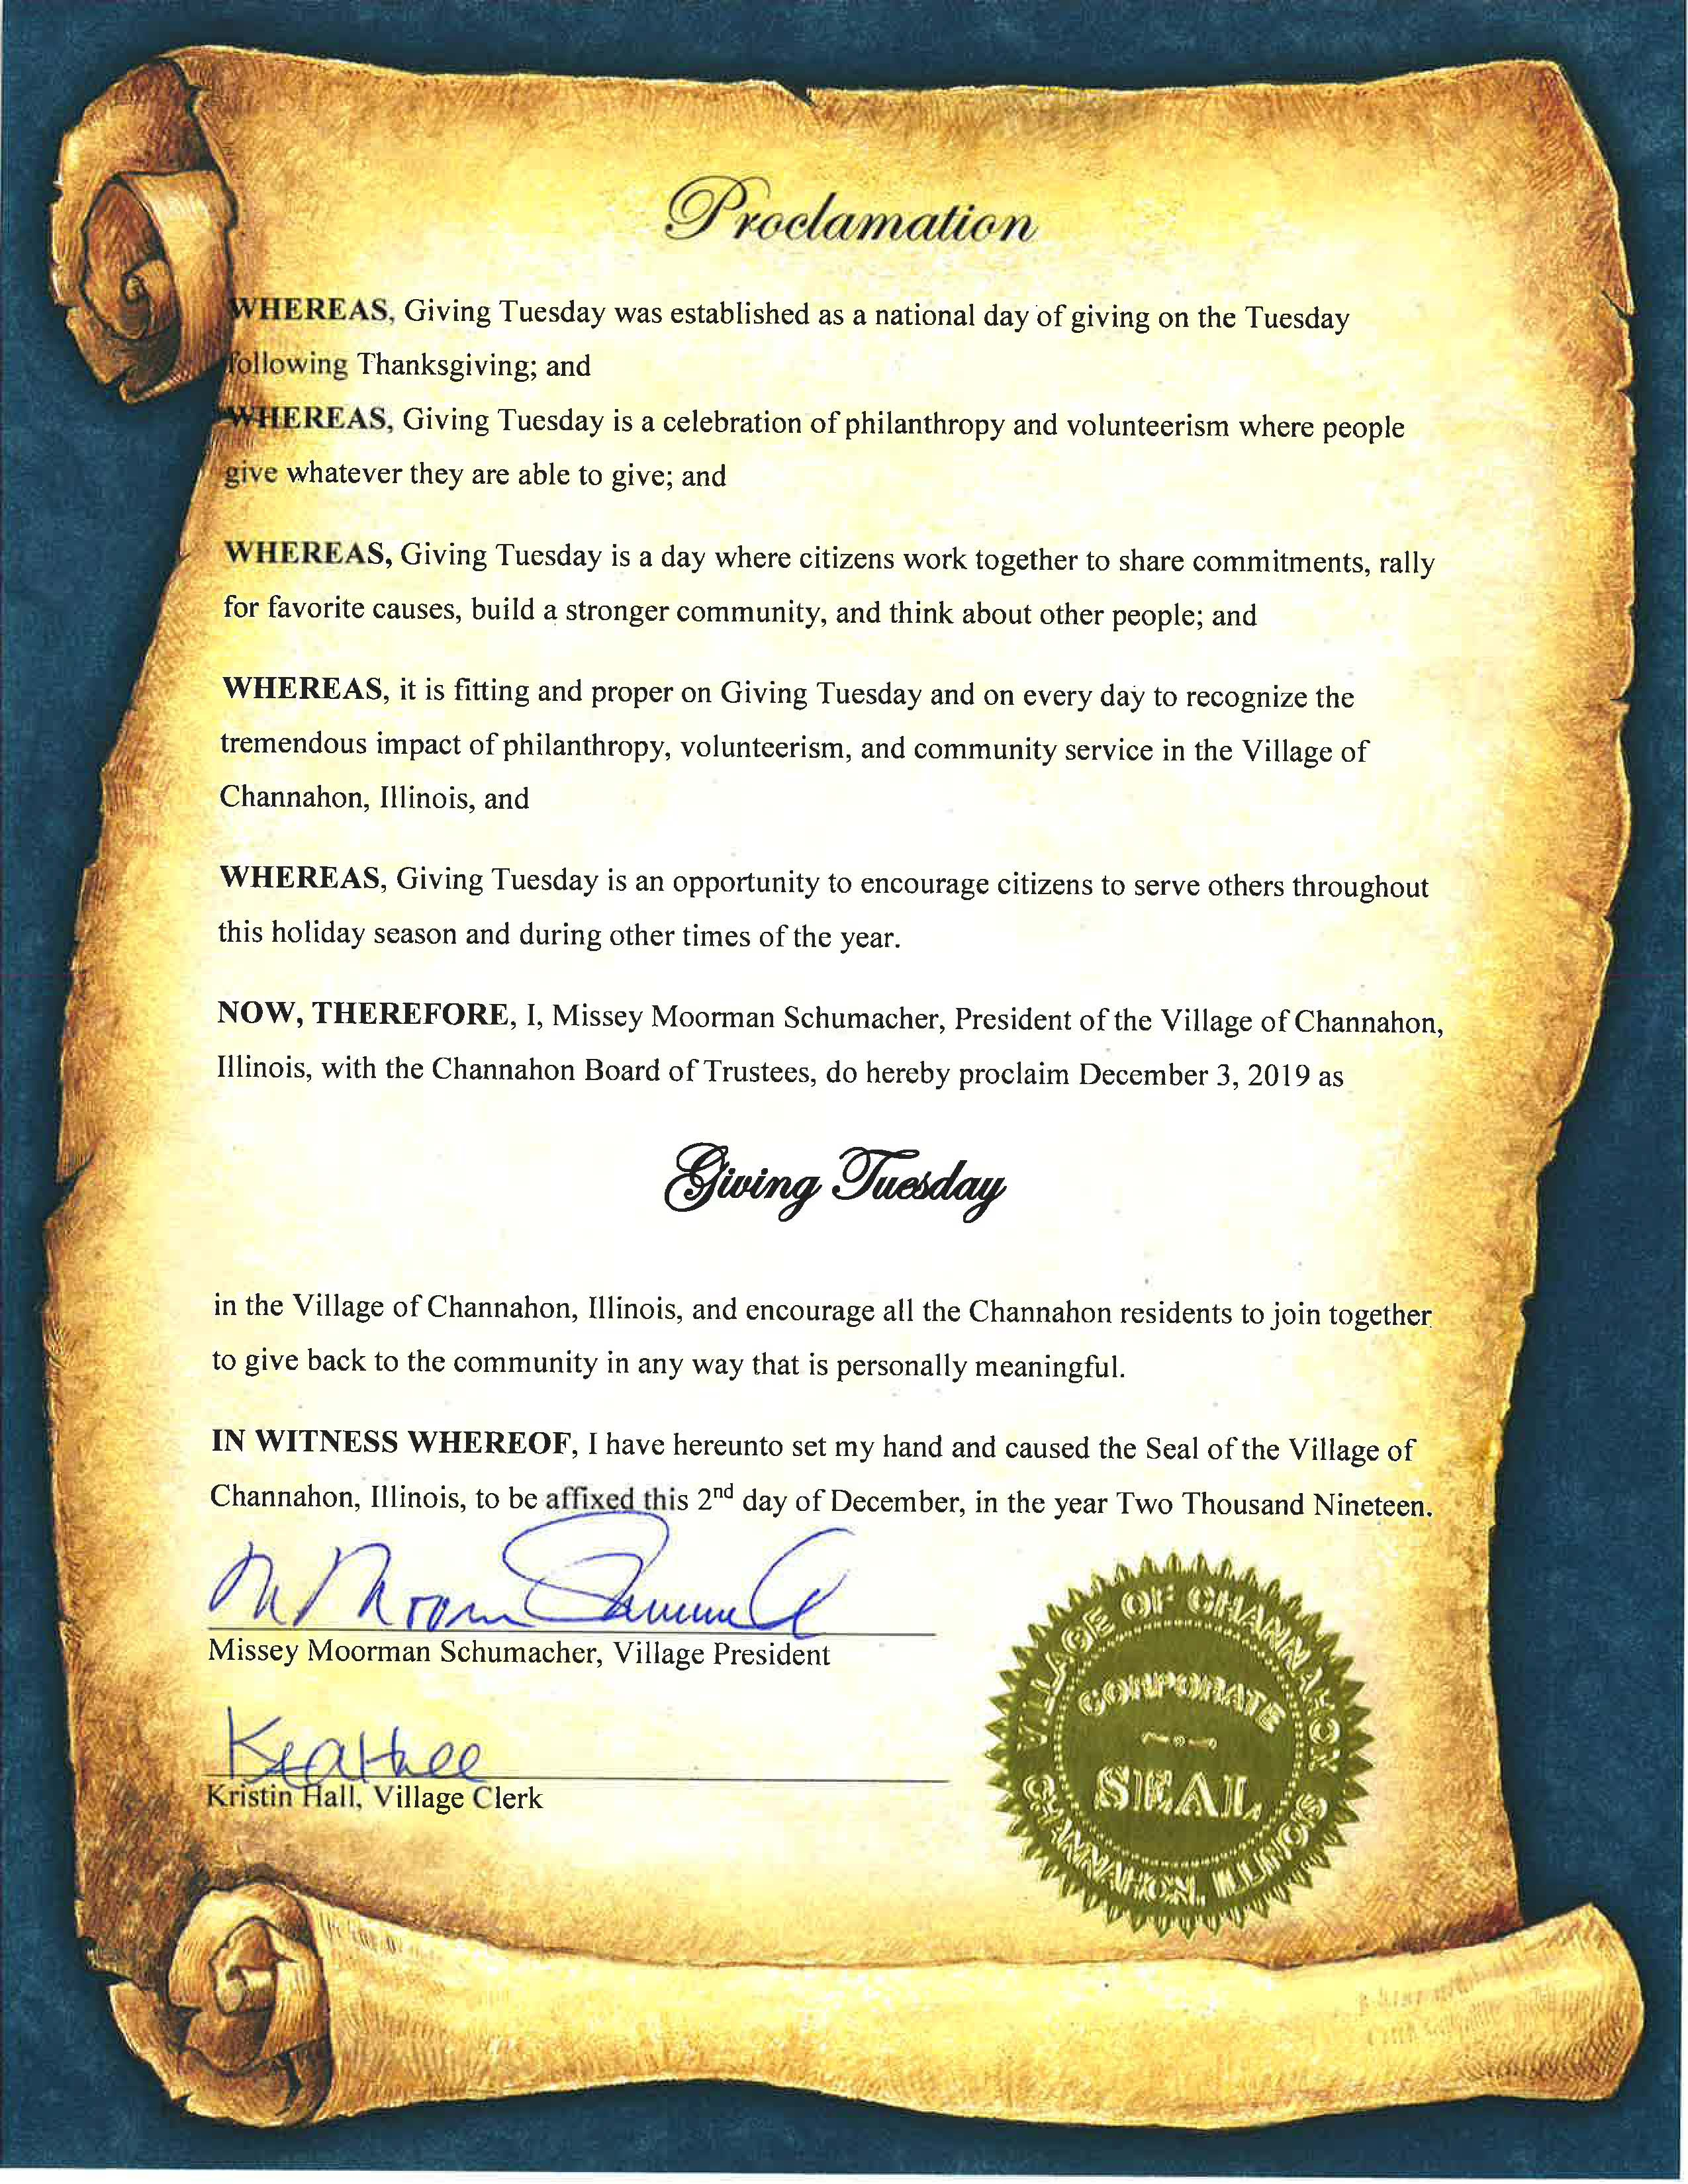 Image of proclamation declaring Tuesday, December 3, 2019 as Giving Tuesday in Channahon.